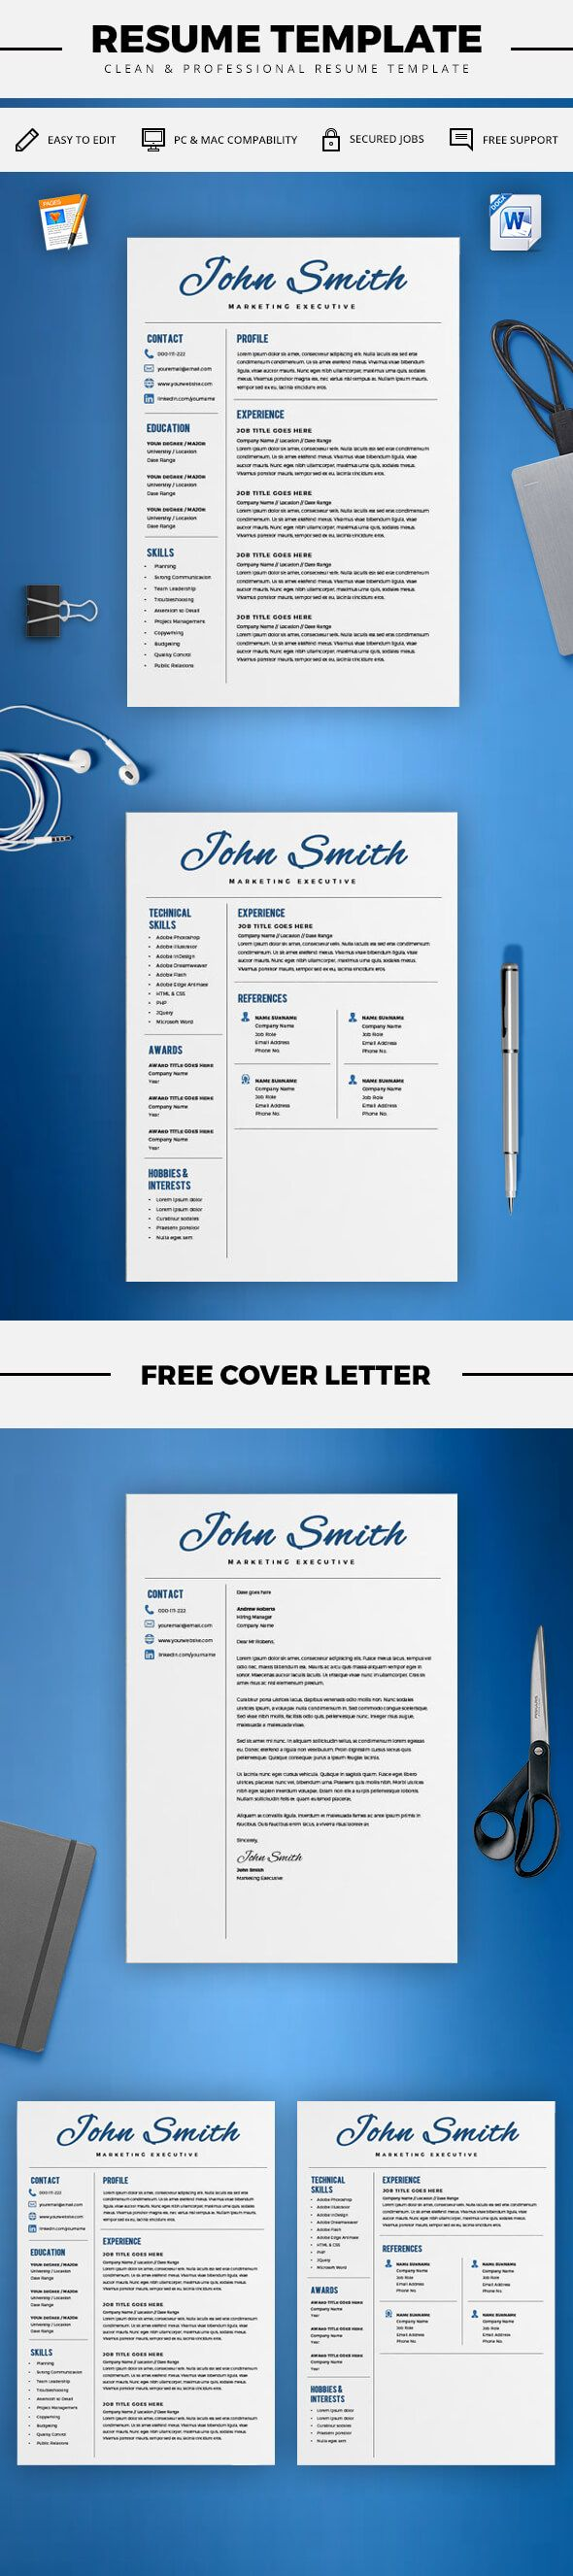 Amazing 1 Page Resume Format Free Download Huge 10 Envelope Template Round 15 Year Old Resume Sample 18th Invitation Templates Old 1and1 Templates Coloured2 Binder Spine Template 25  Best Ideas About Resume Template Free On Pinterest | Free ..